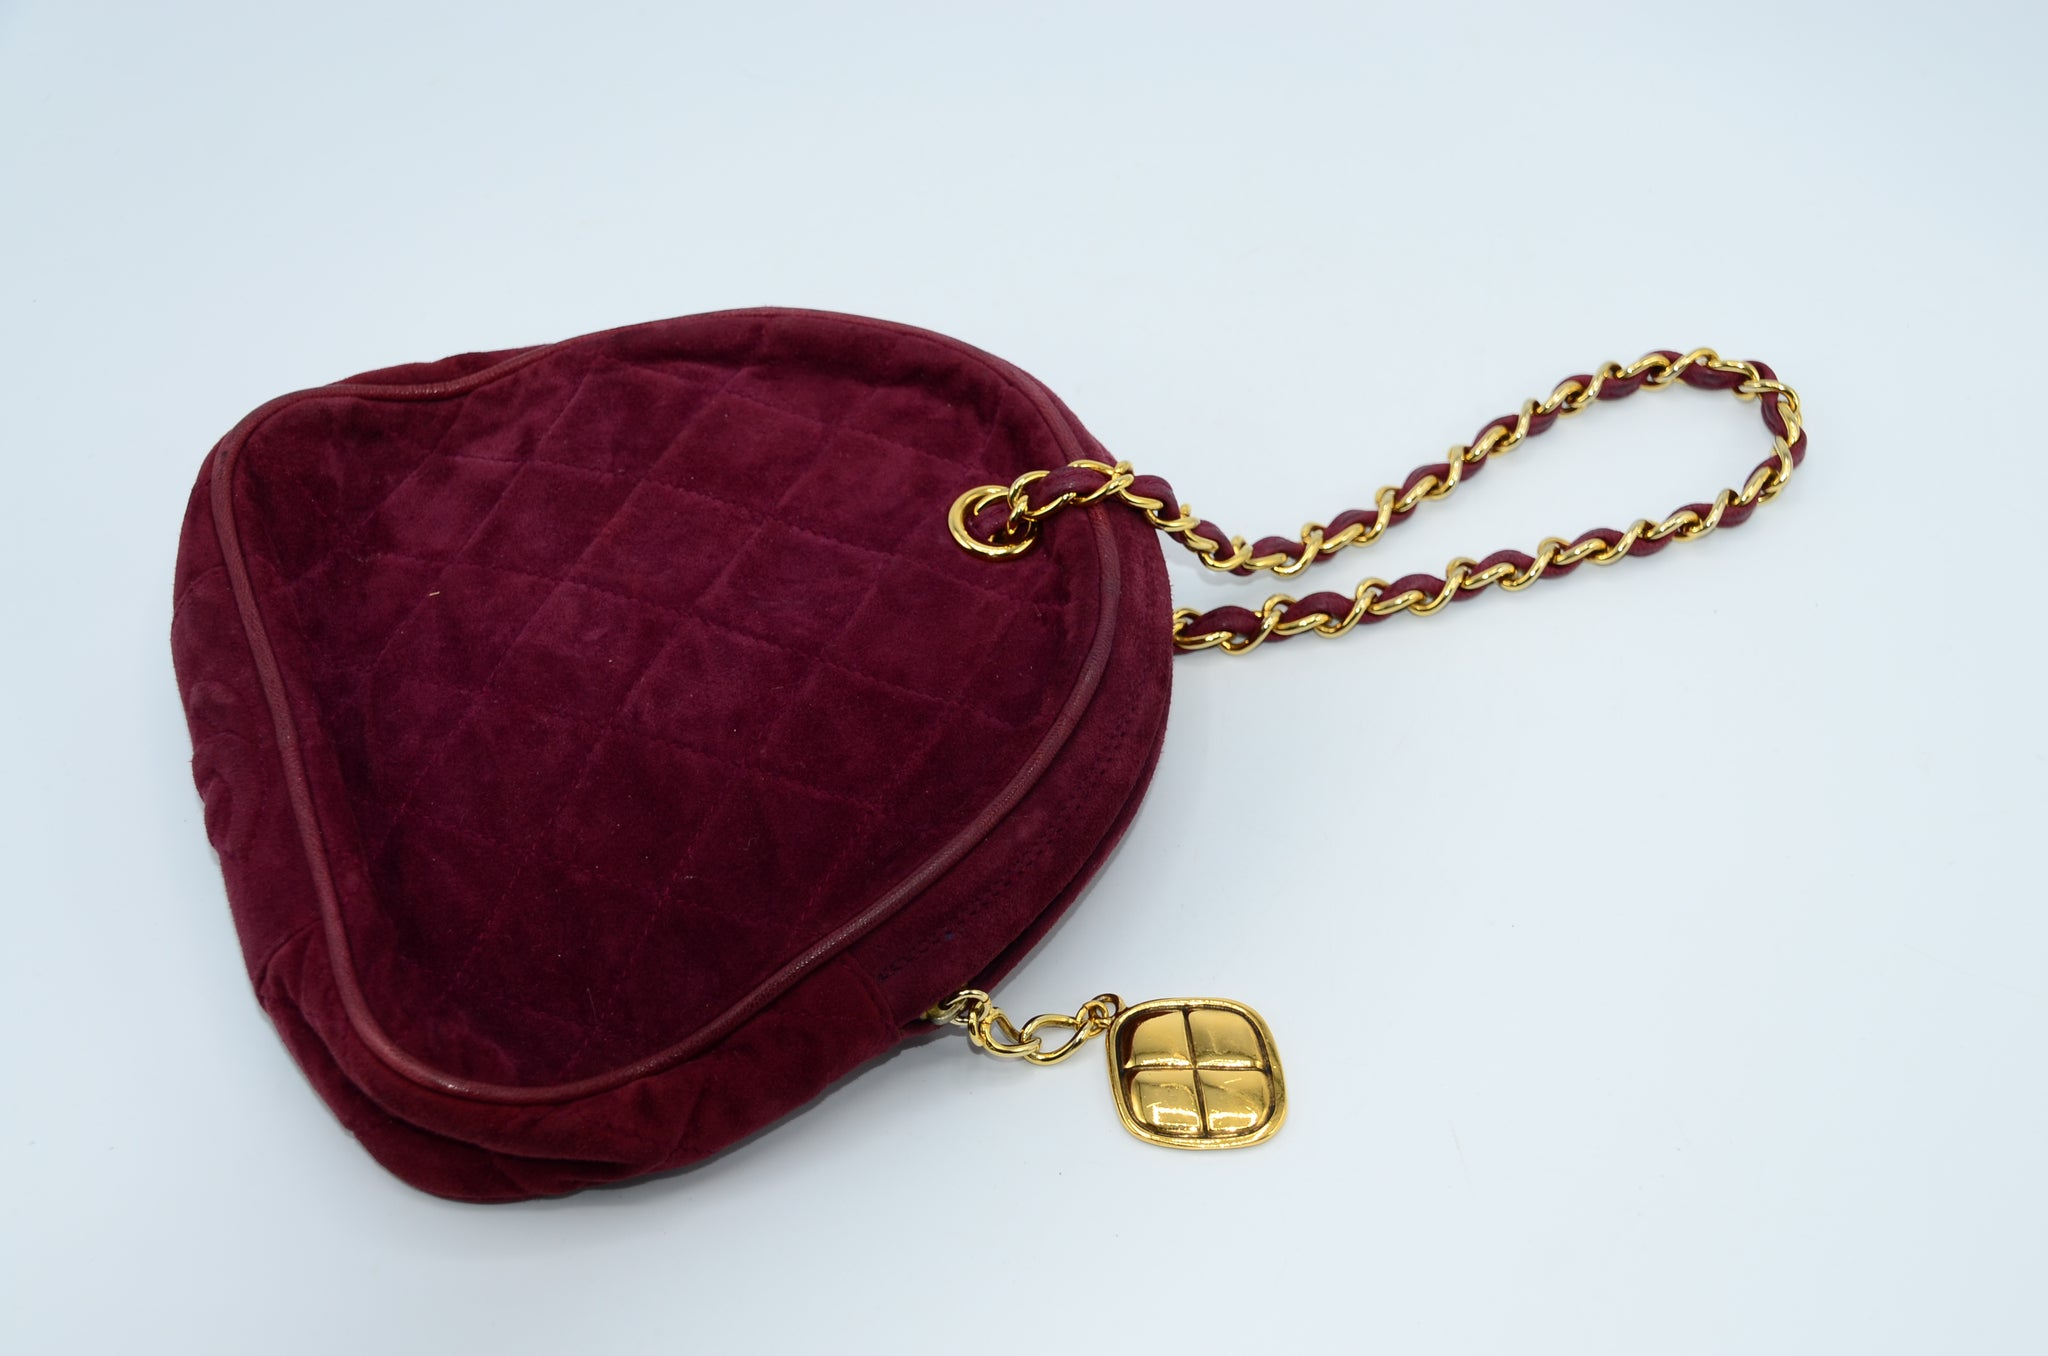 Chanel Evening bag